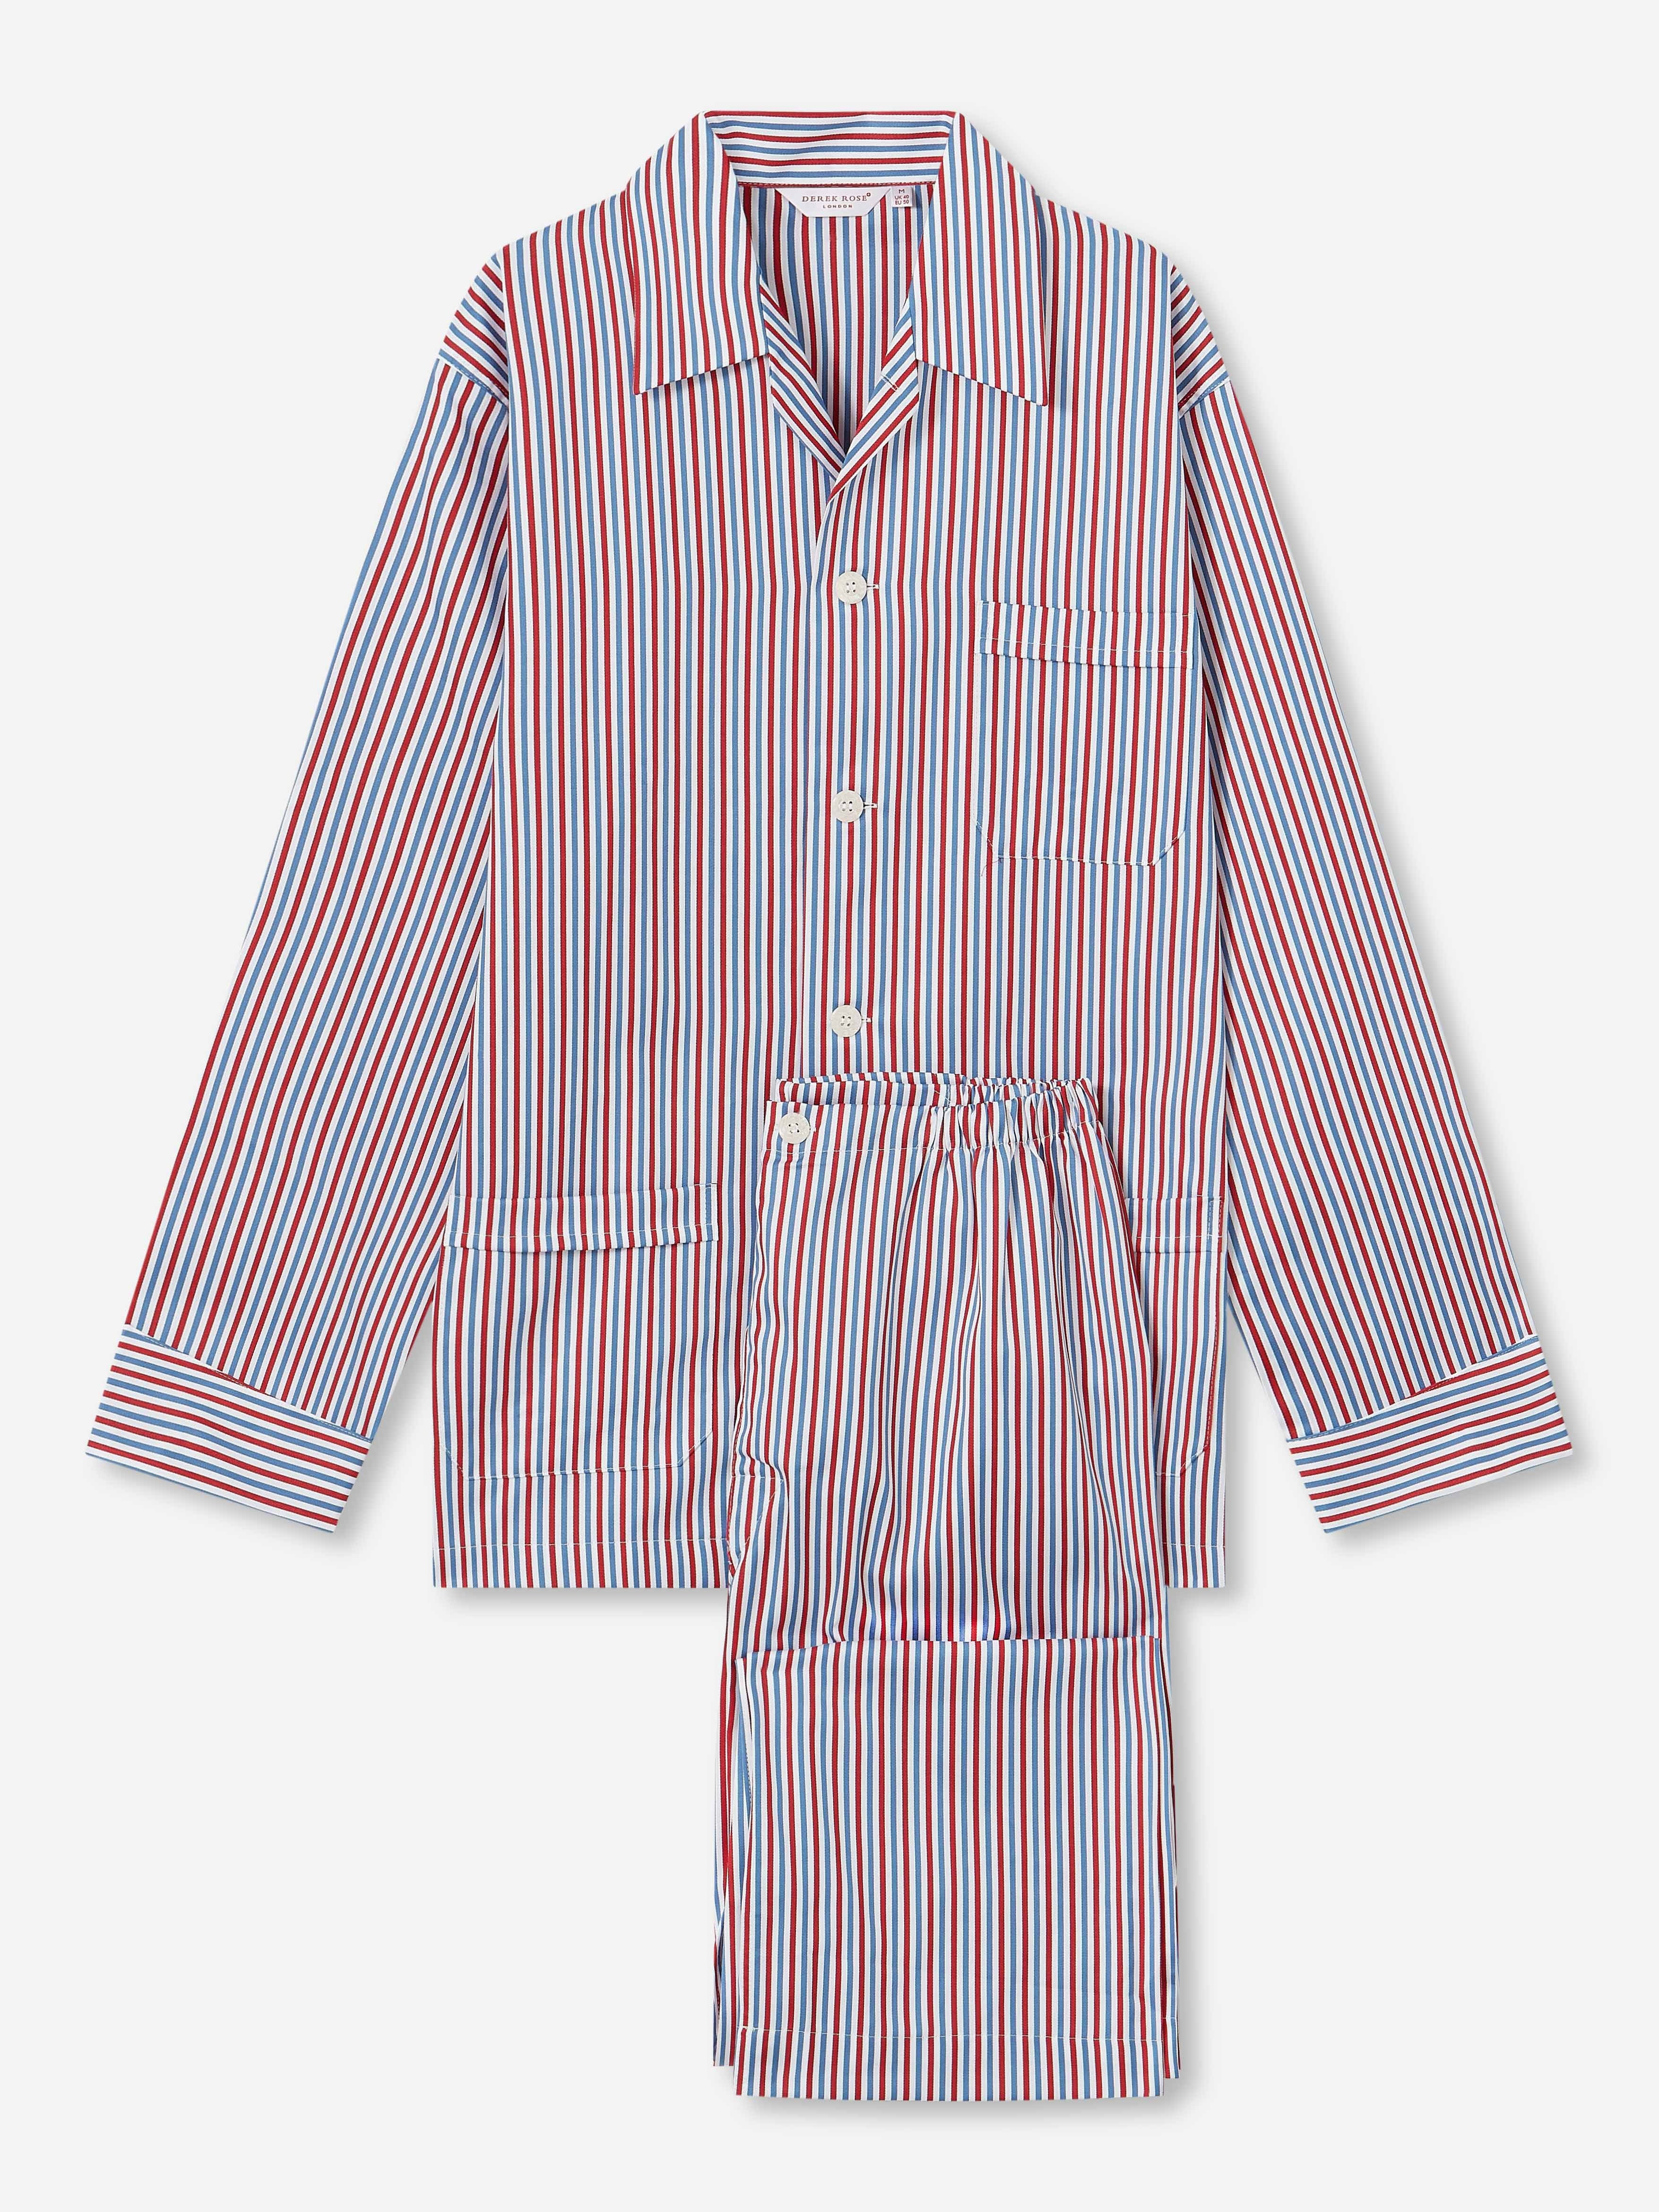 Men's Classic Fit Pyjamas Wellington 50 Cotton Full Satin Multi